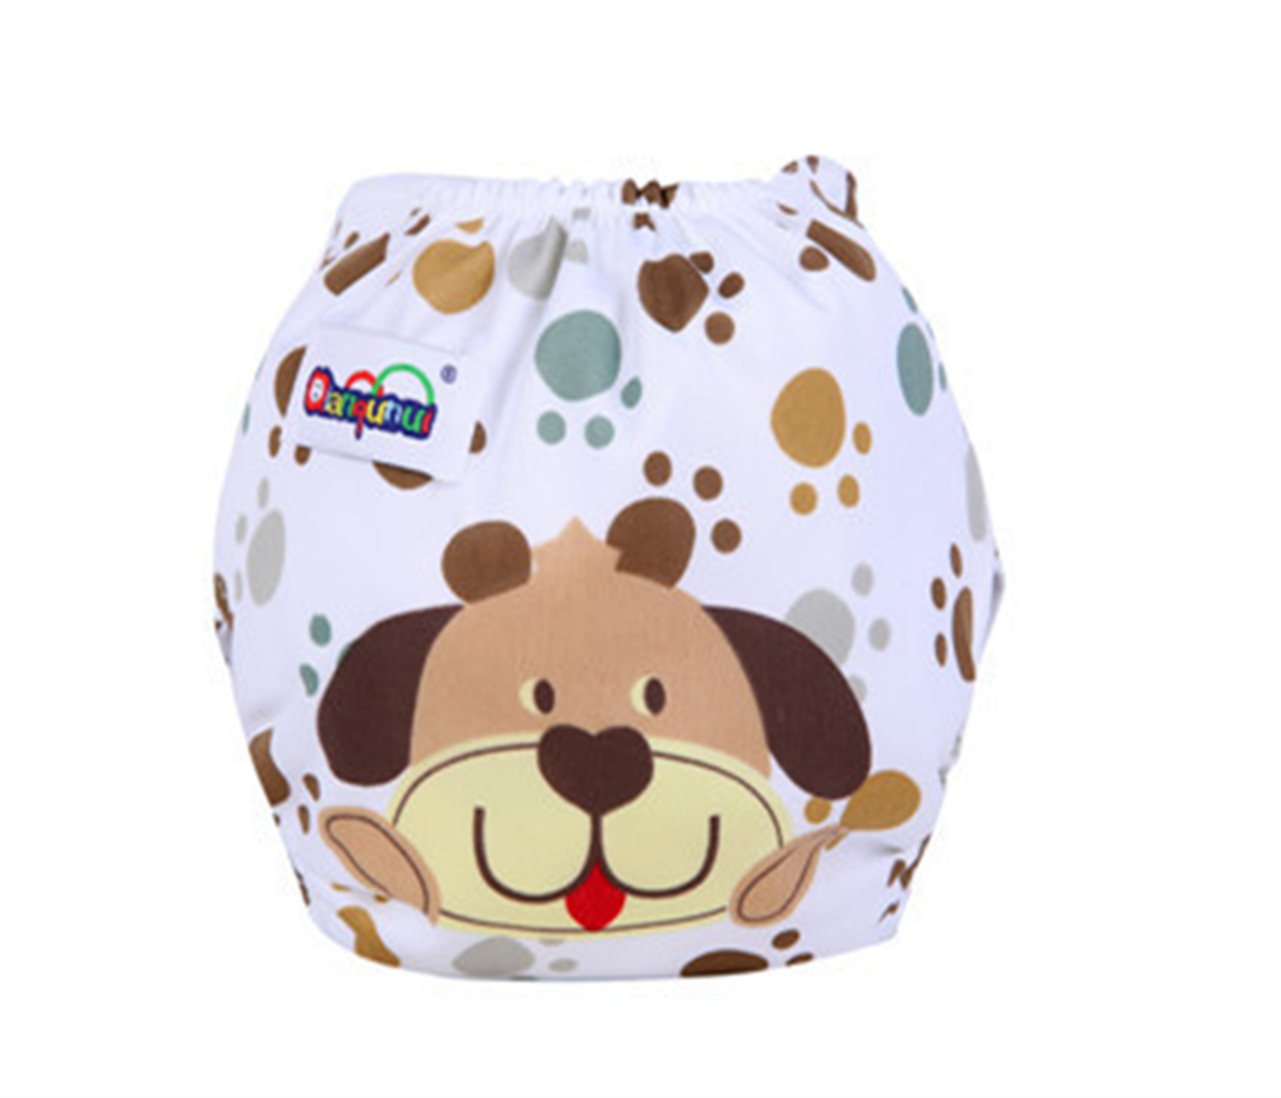 1pc Baby Cotton Diapers Newborn Waterproof Reusable Cloth Diaper/Reusable Nappies Training Pants Diaper Cover Washable